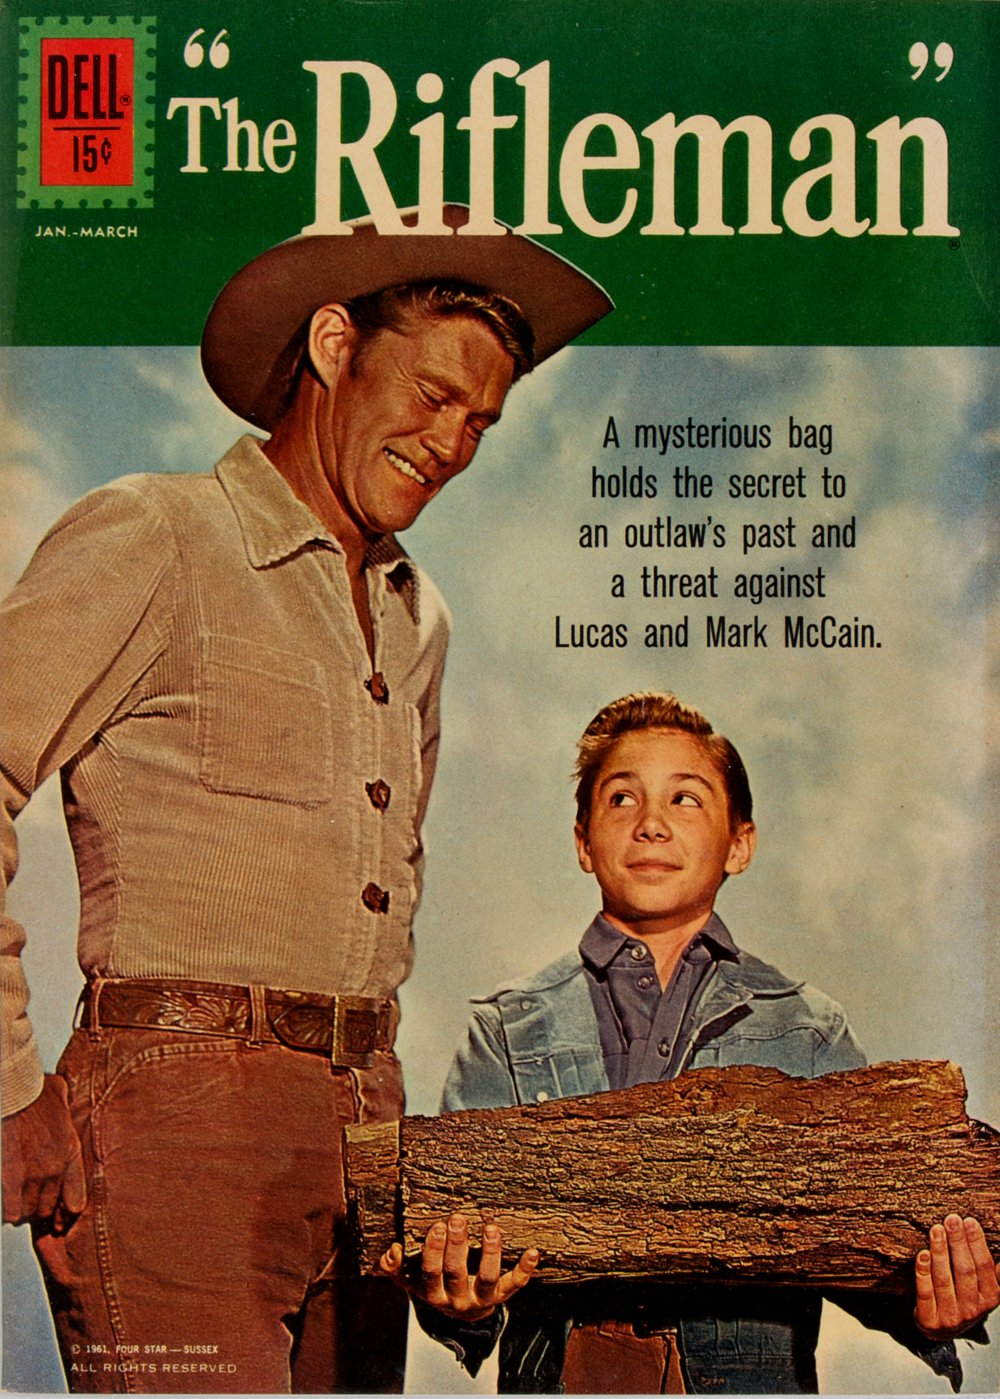 This has nothing to do with art...But is this cover image just WRONG IN SO MANY WAYS? Also, Did Chuck Connors Wet His Pants? LOL